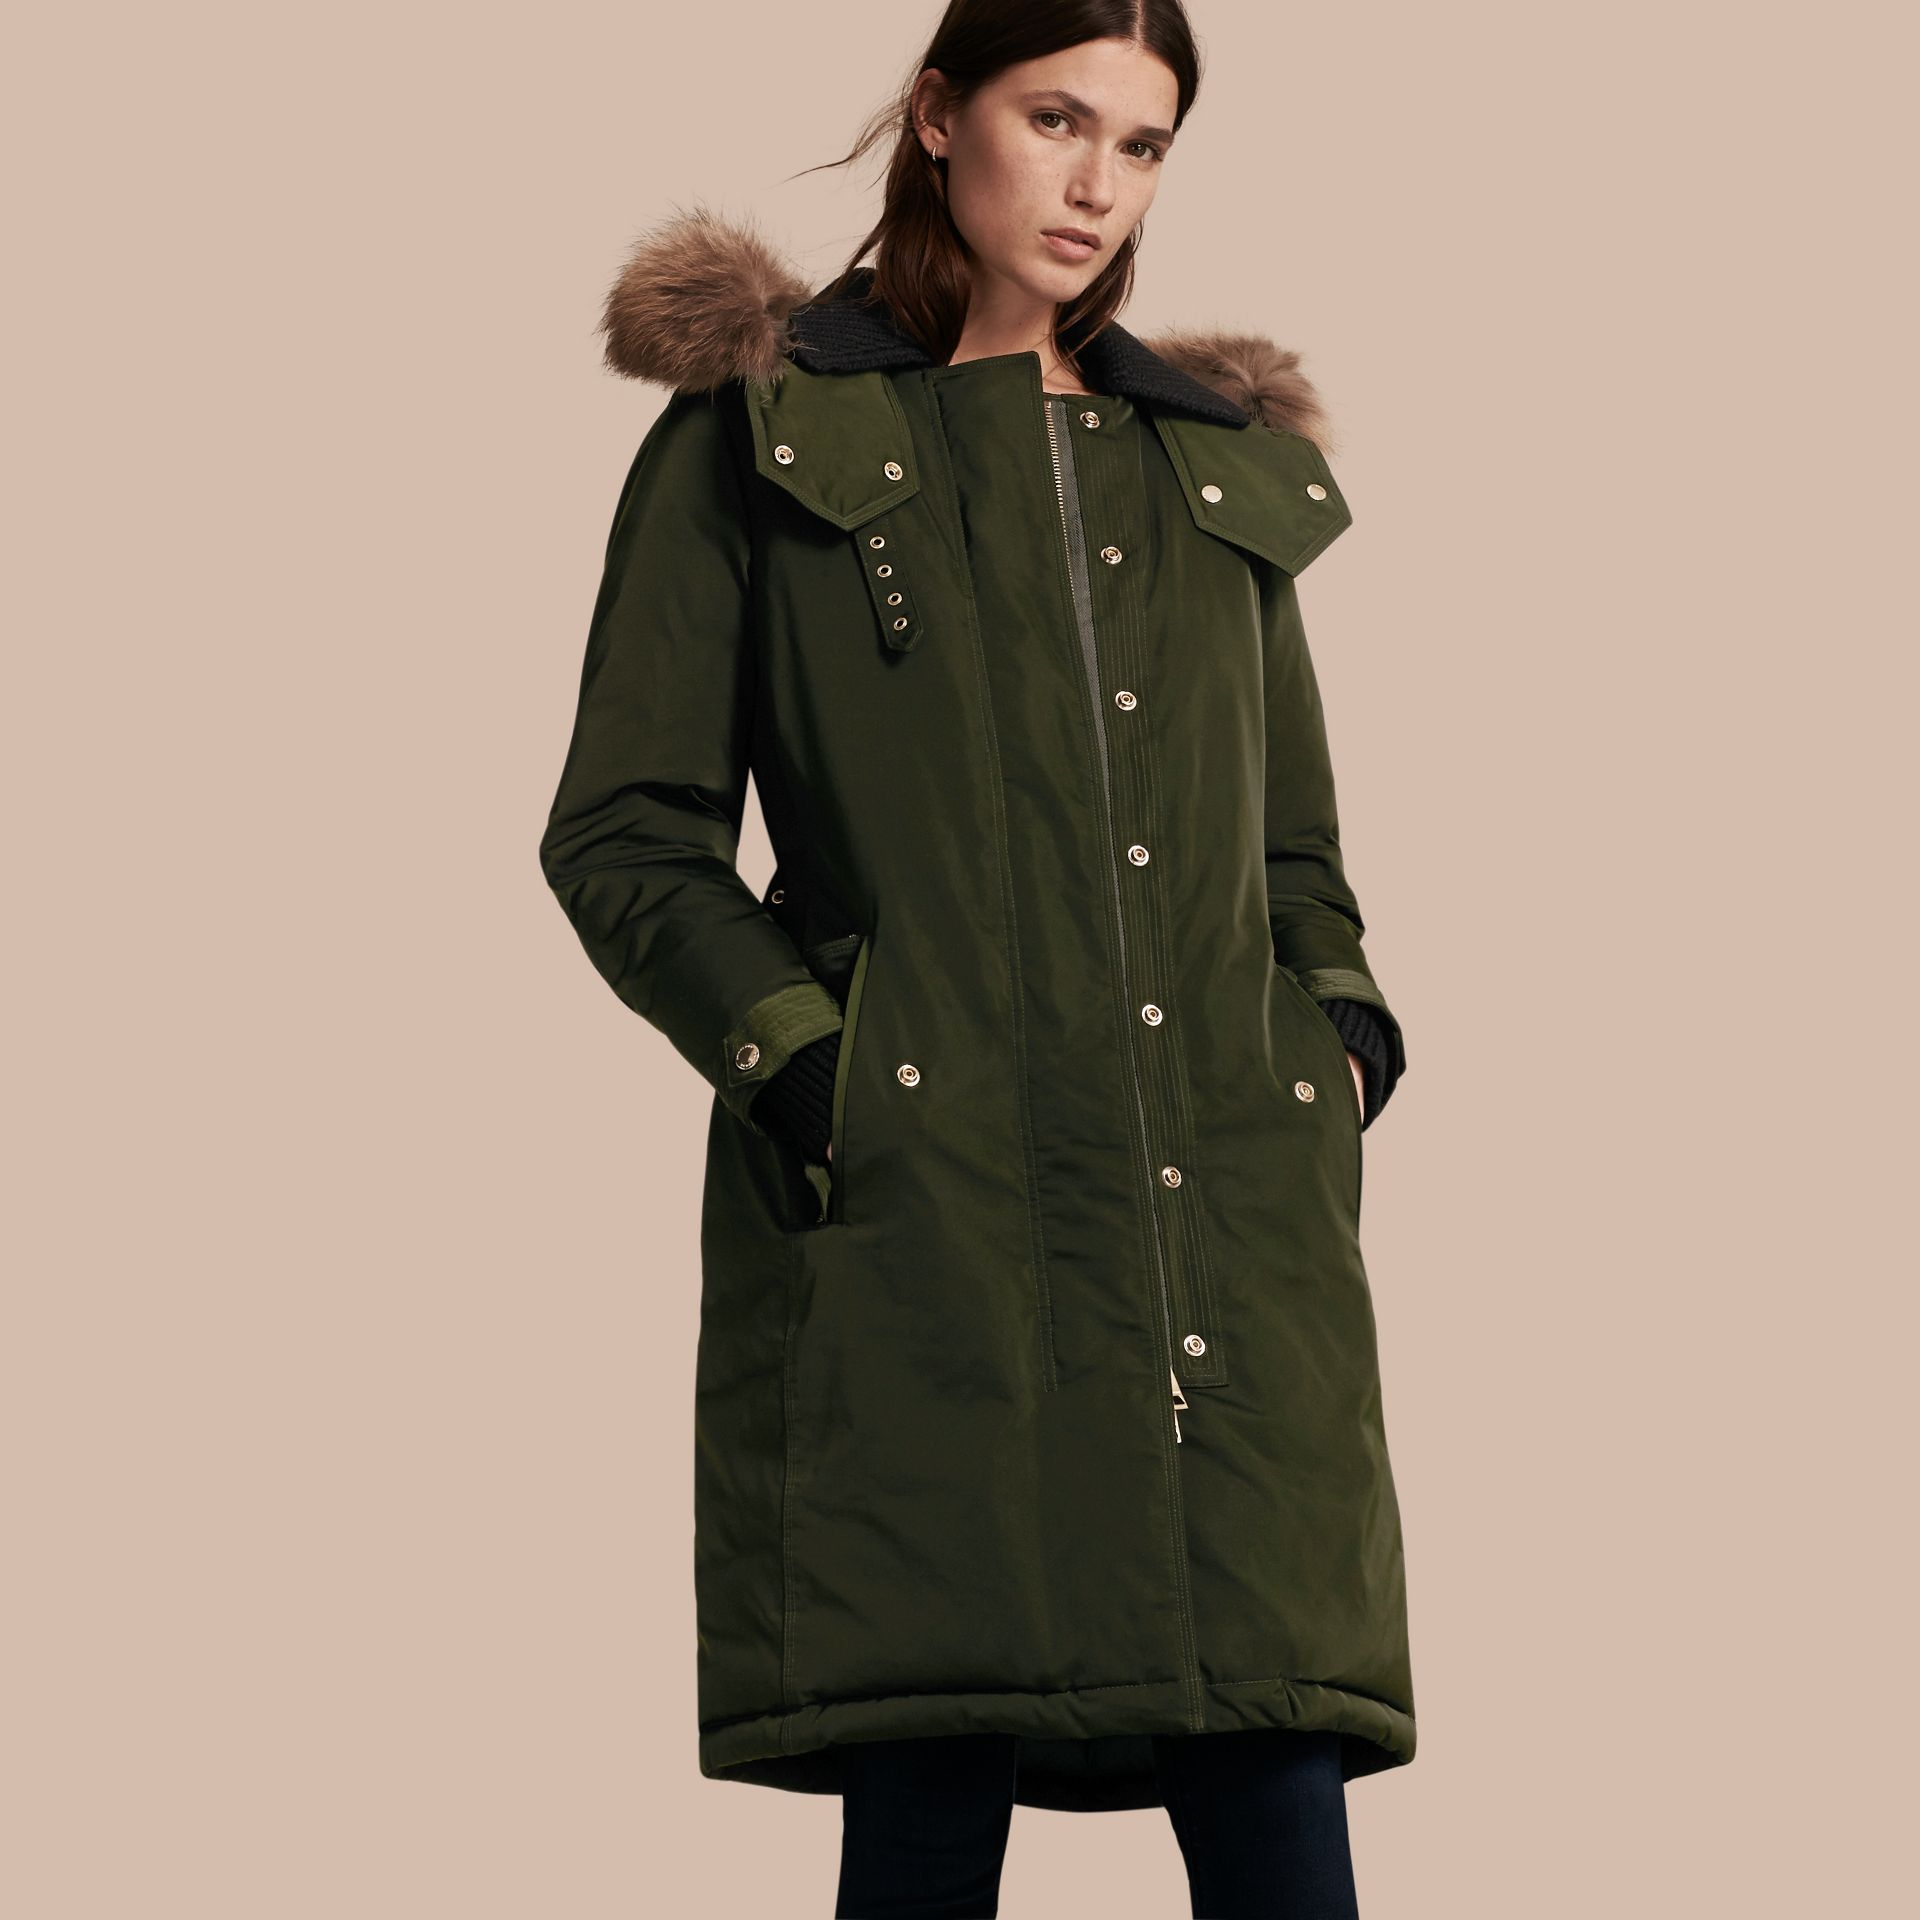 Dark cedar green Down-filled Parka Coat with Detachable Fur Trim Dark Cedar Green - gallery image 1